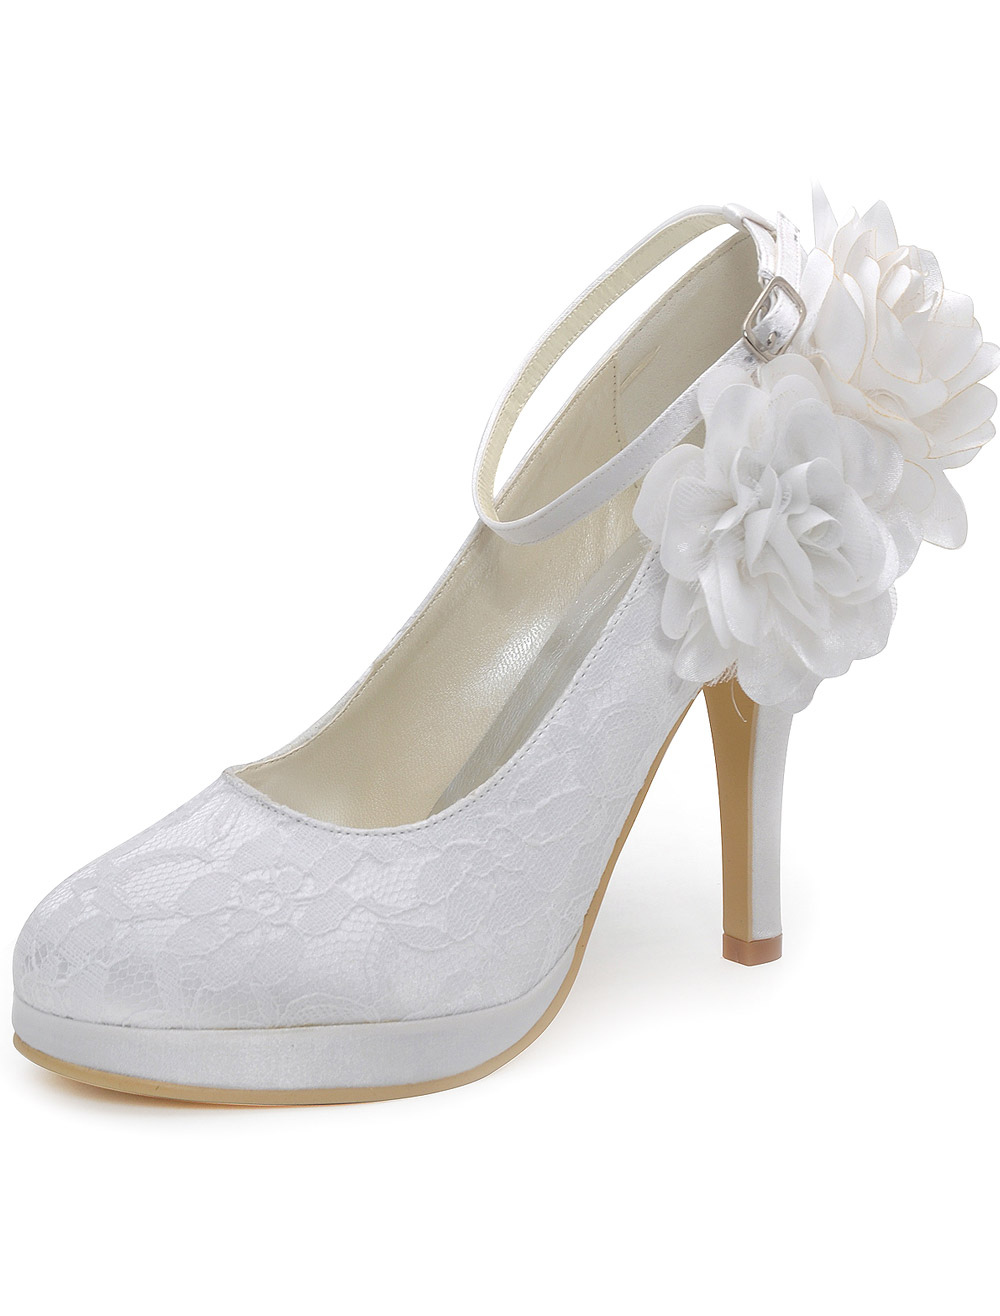 White Lace Almond Toe Silk And Satin High Heel Bride's Evening Shoes